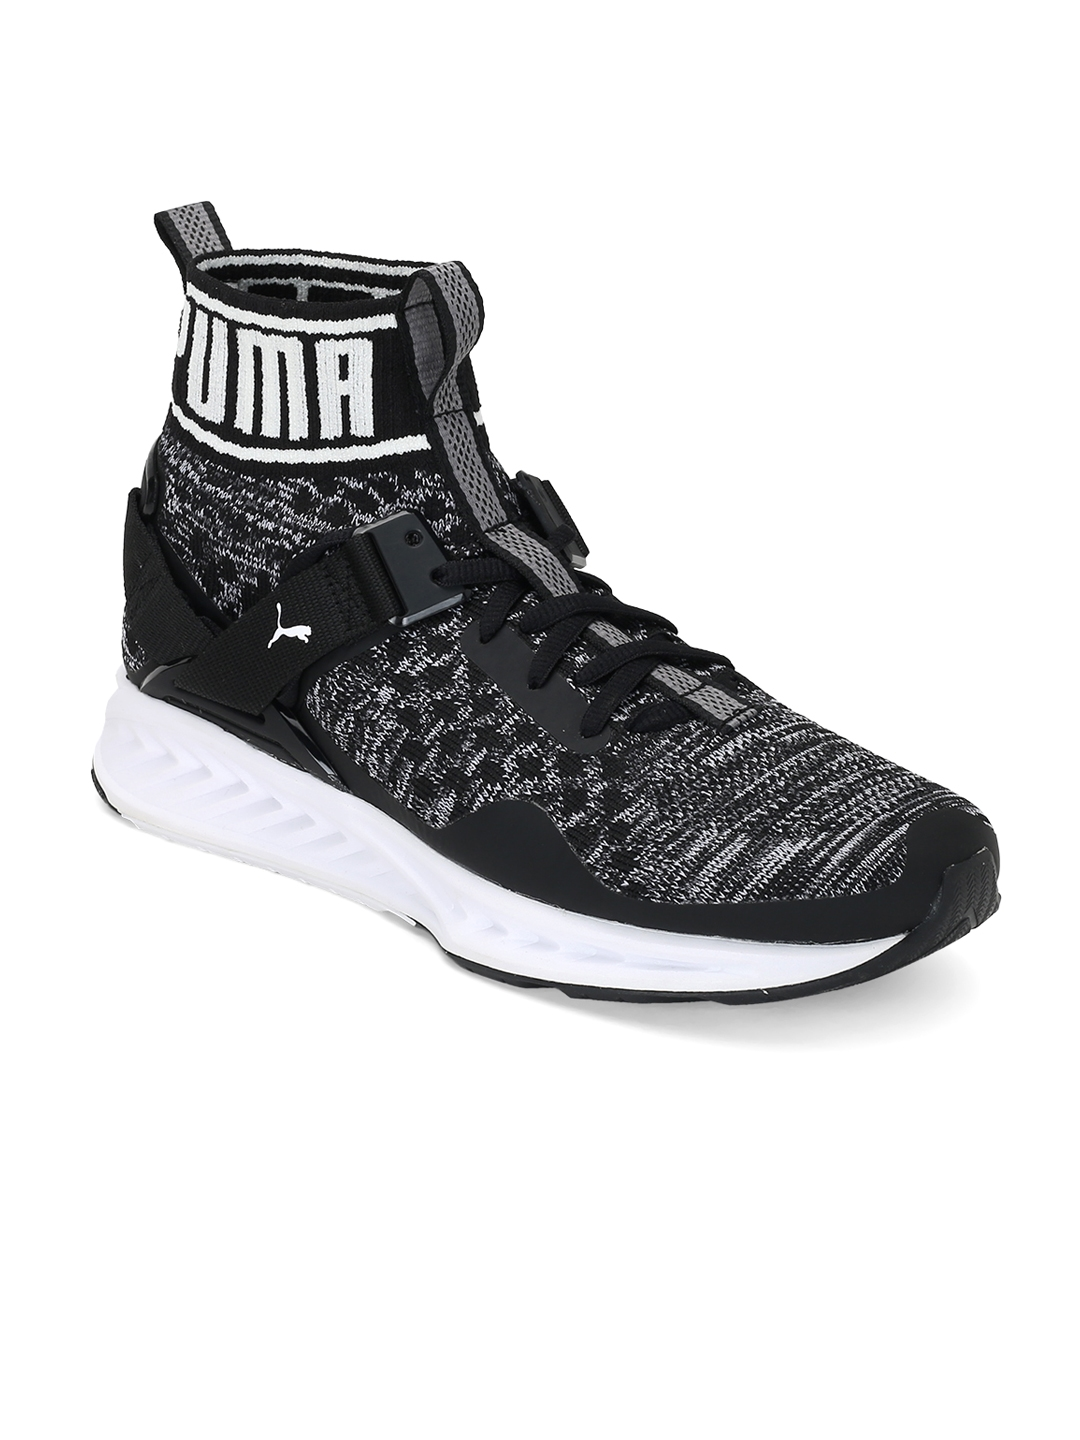 puma high tops womens. puma women black ignite evoknit high-top sports shoes high tops womens